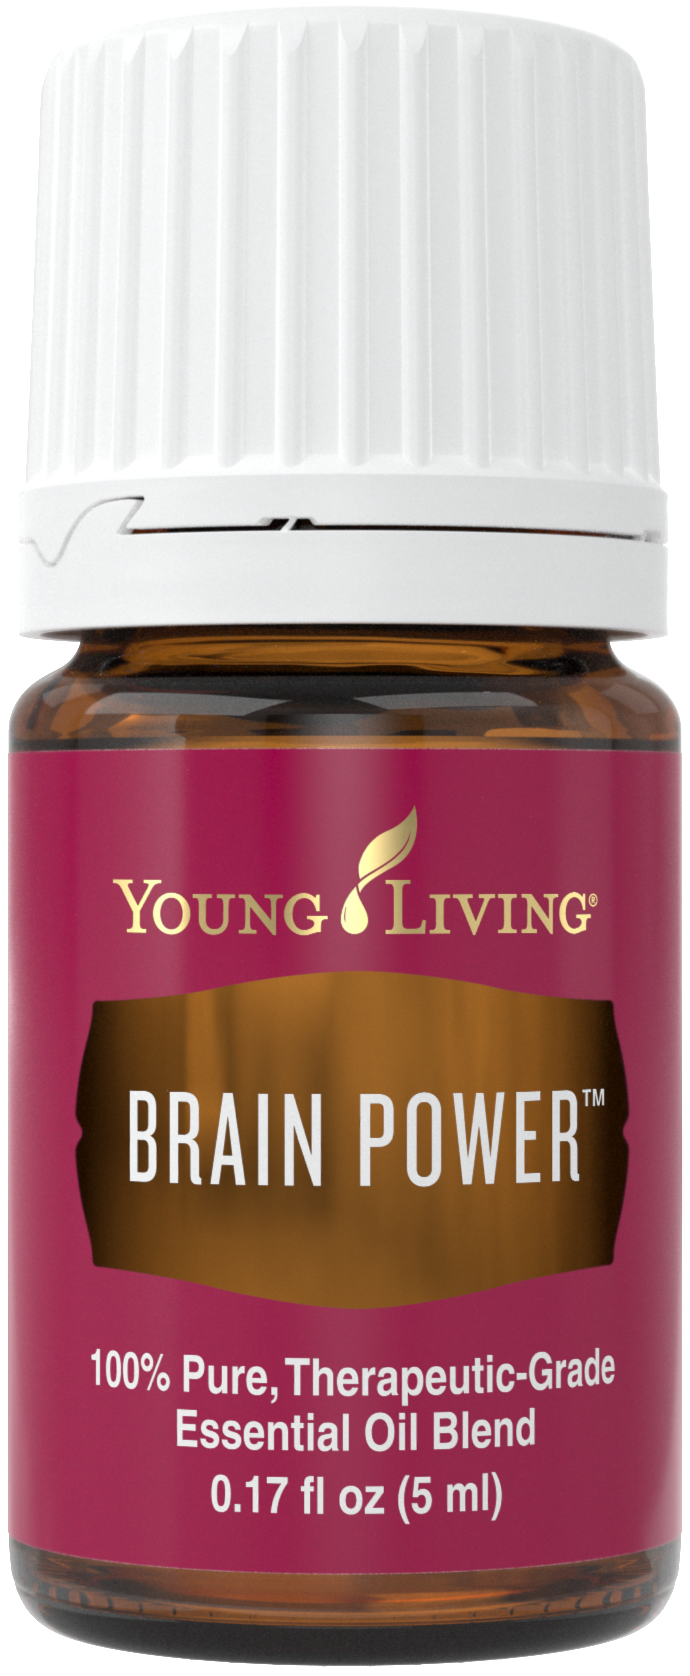 Brain Power essential oil